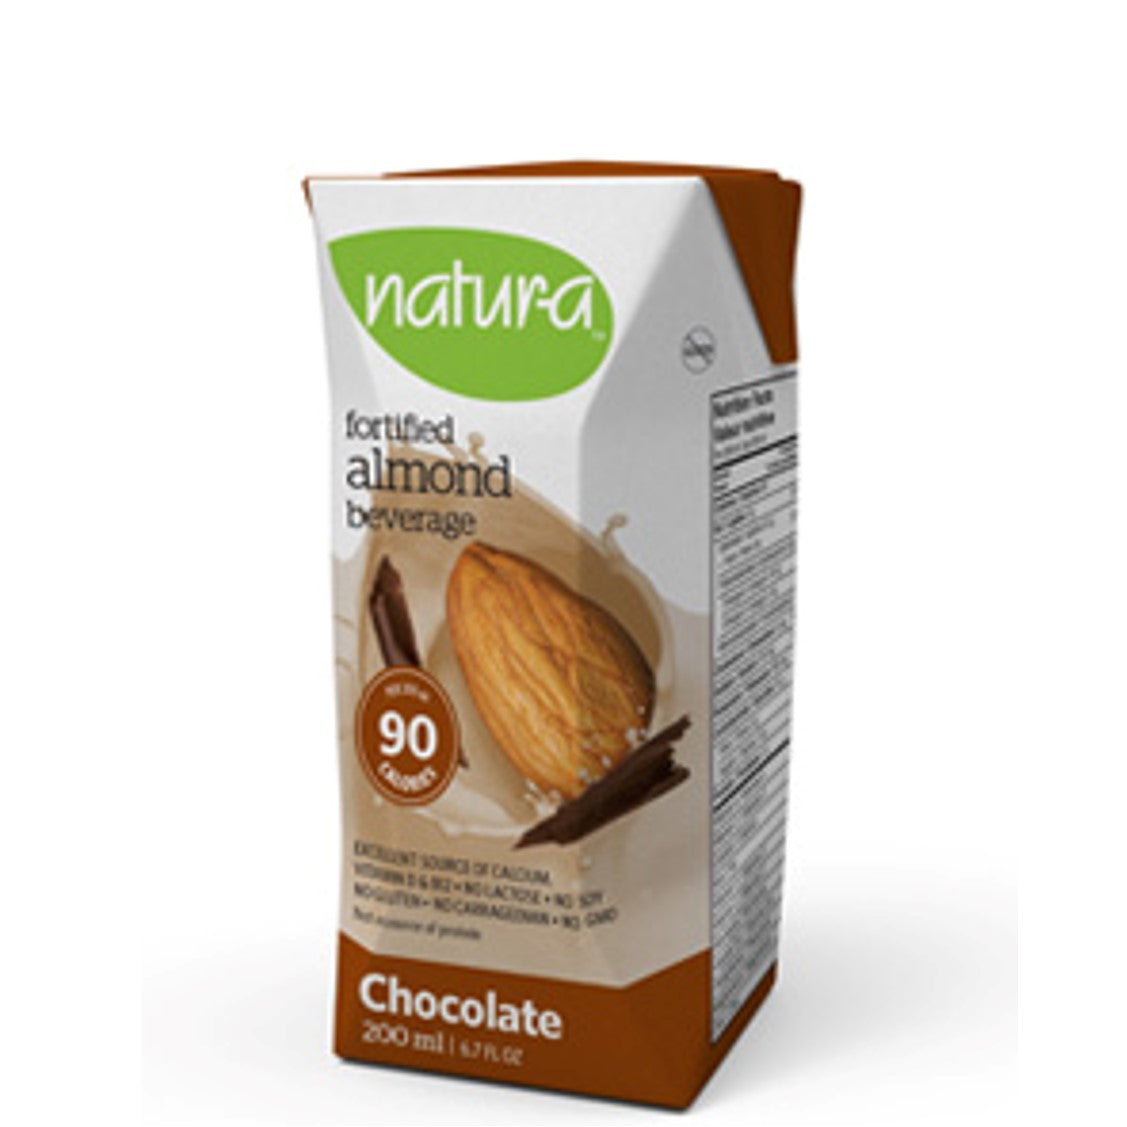 Natur-a Enriched Almond Beverage - Chocolate, 200 ml.-NaturesWisdom